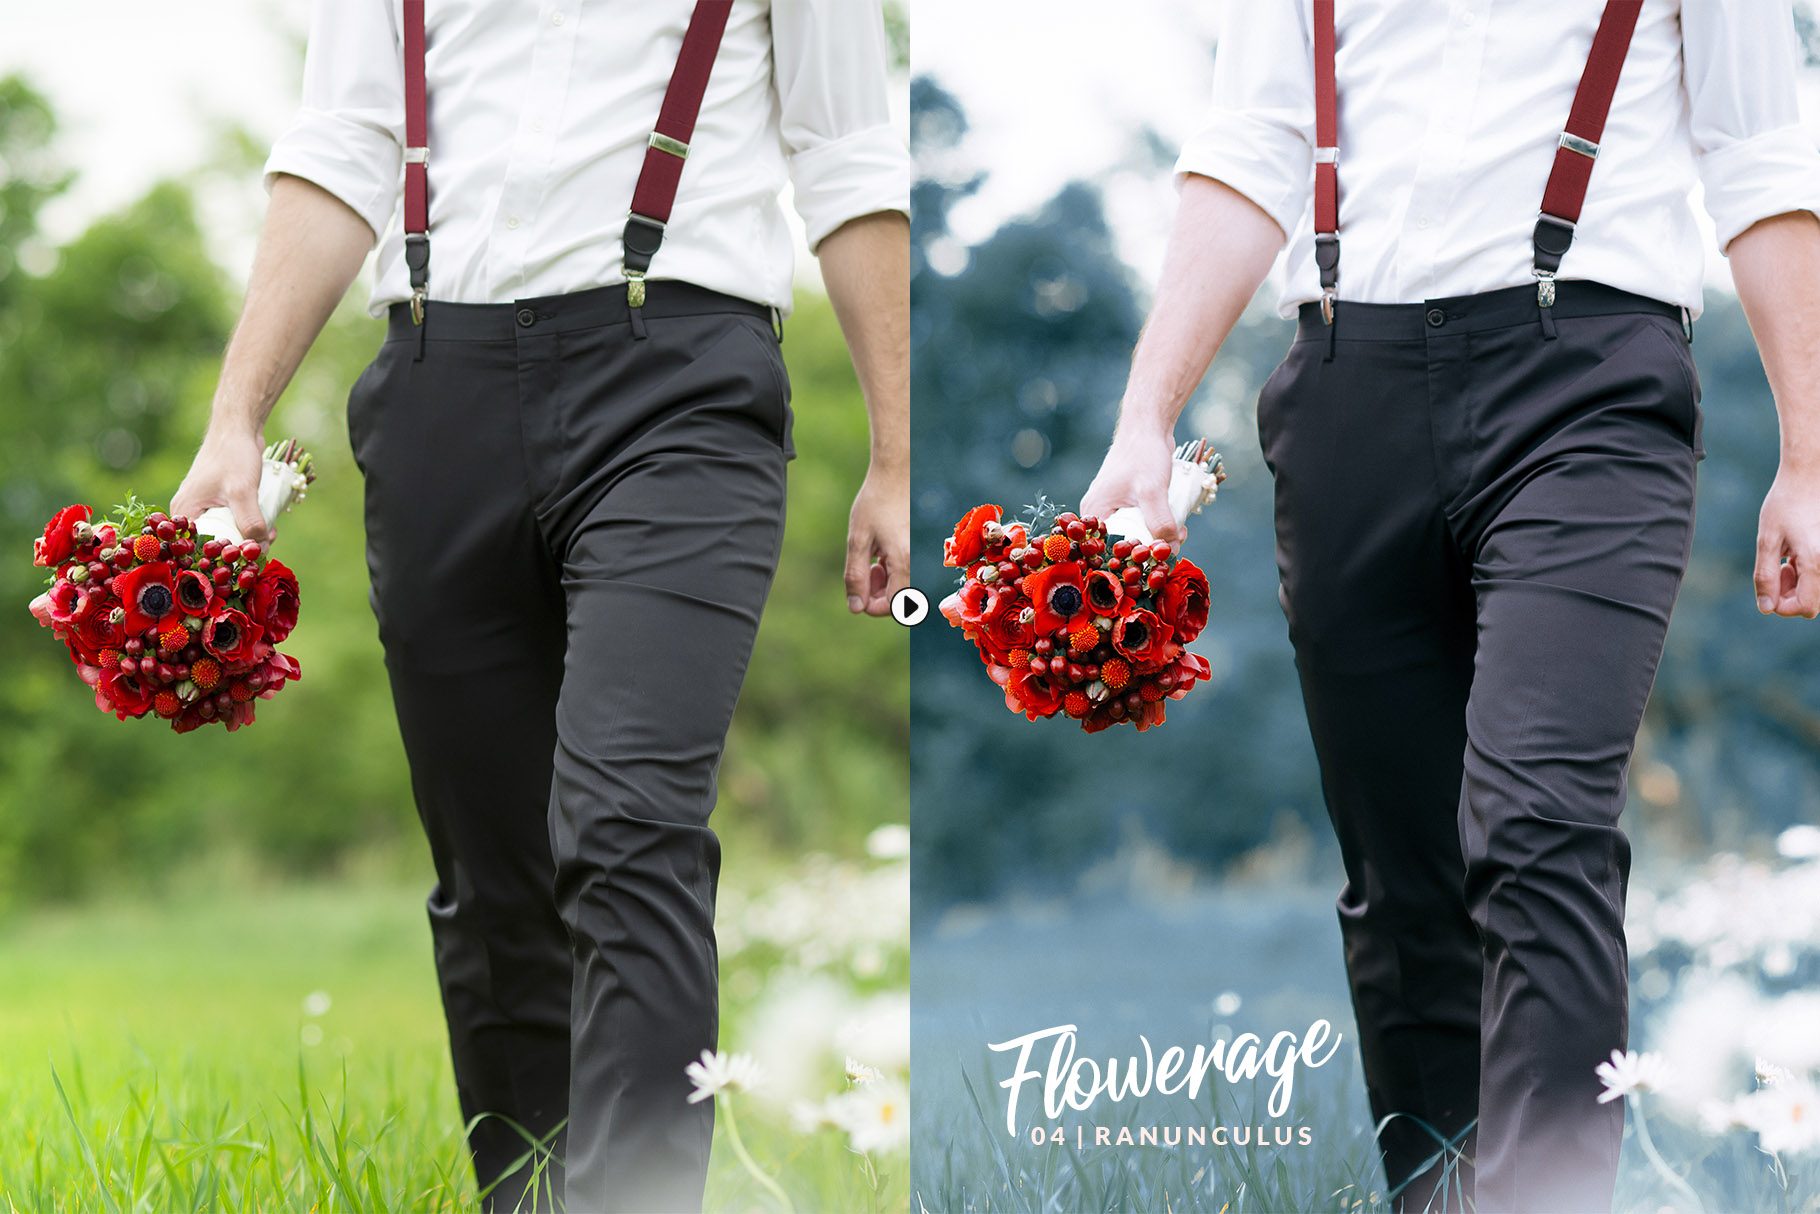 Flowerage_preview_06_pro